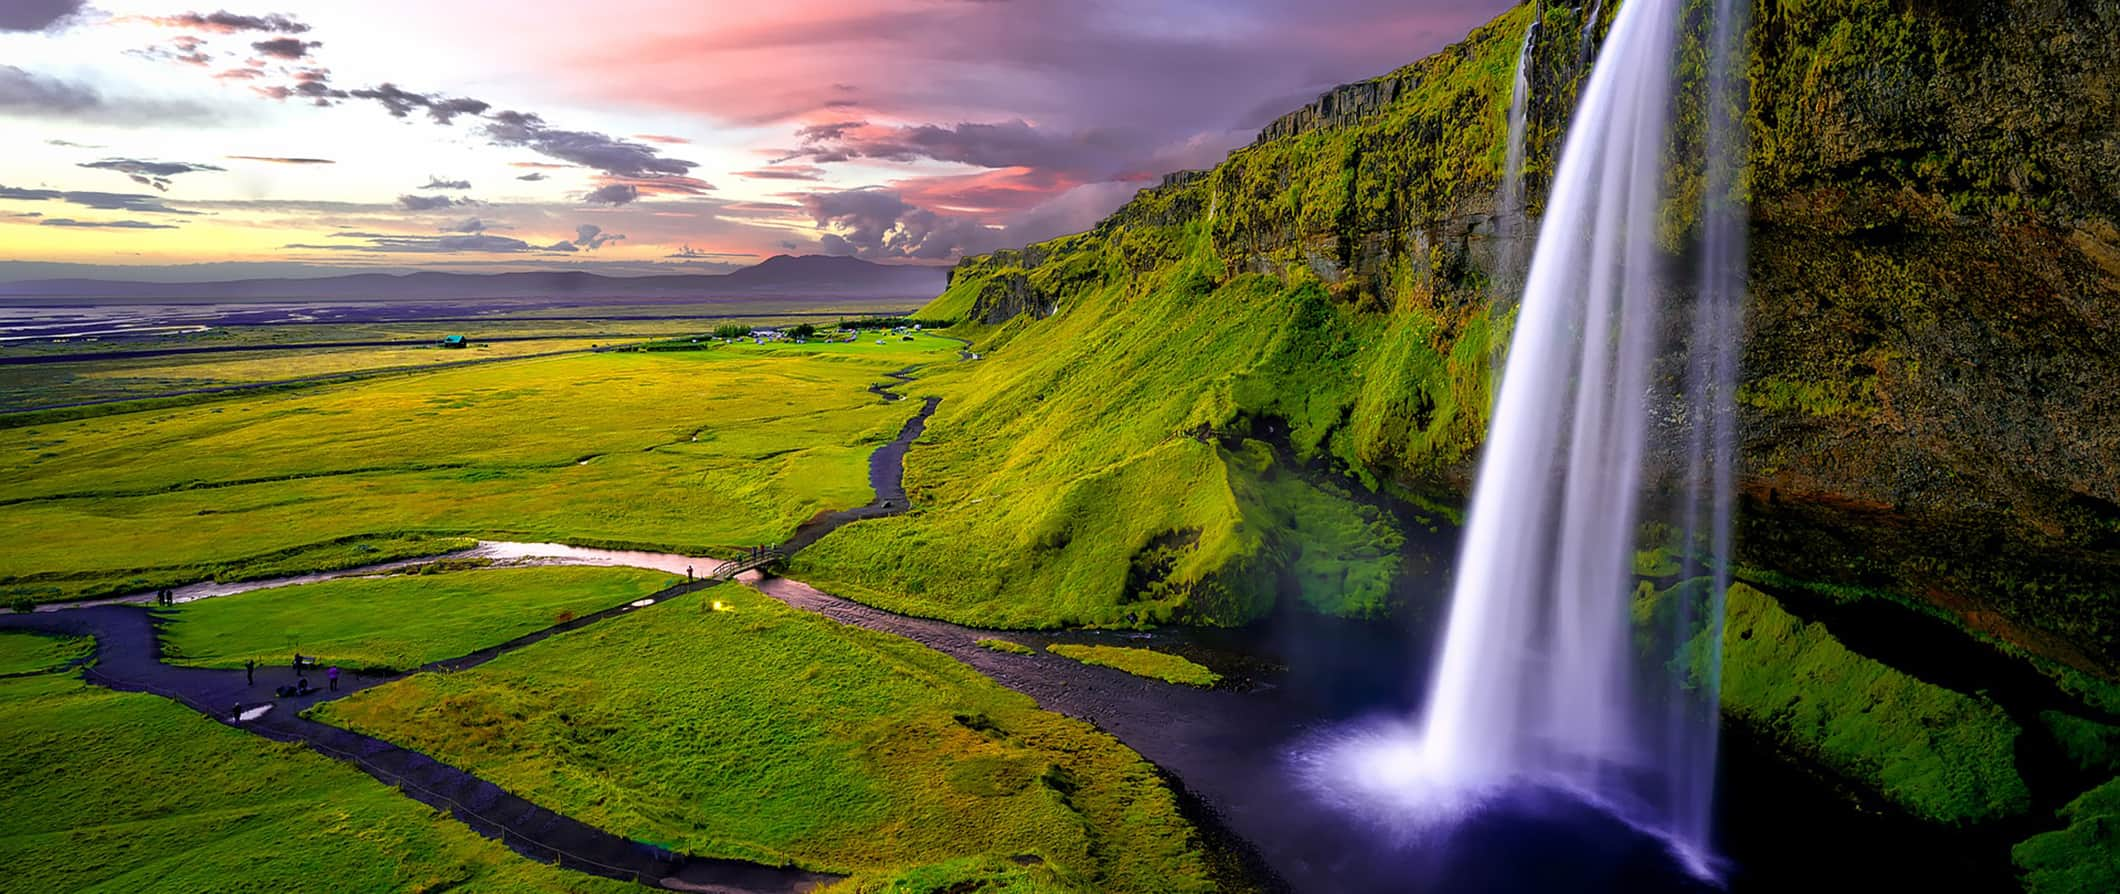 one of Iceland's many waterfalls, at sunset